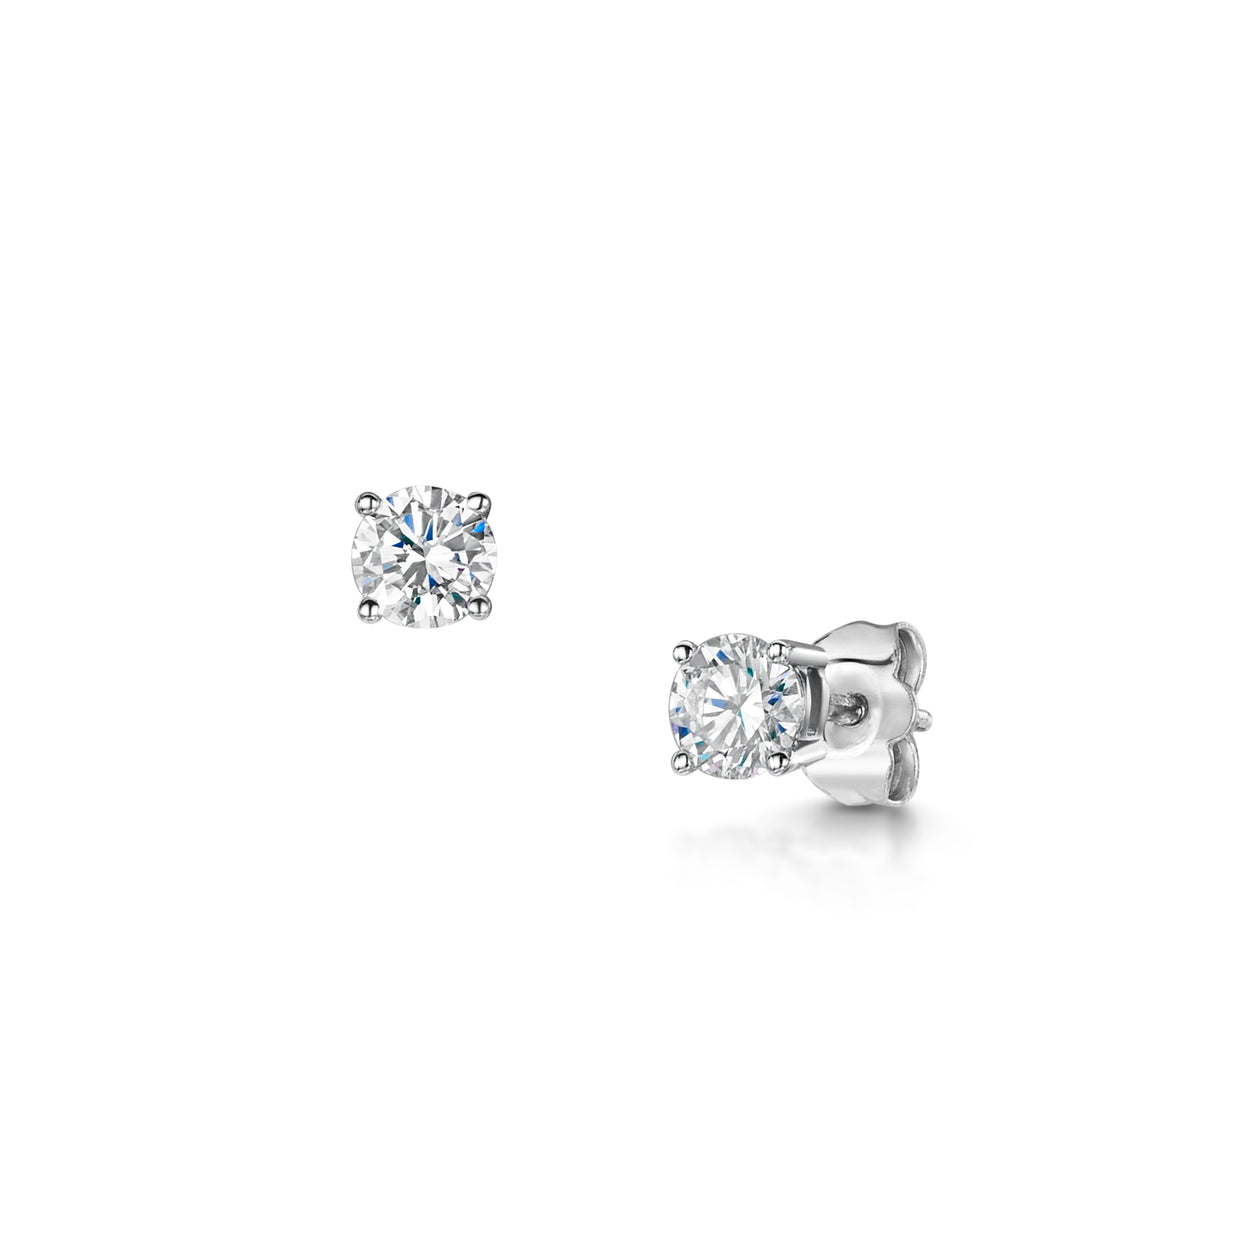 Round Brilliant-Cut 0.90ct Diamond Stud Earrings in White Gold - Hamilton & Inches